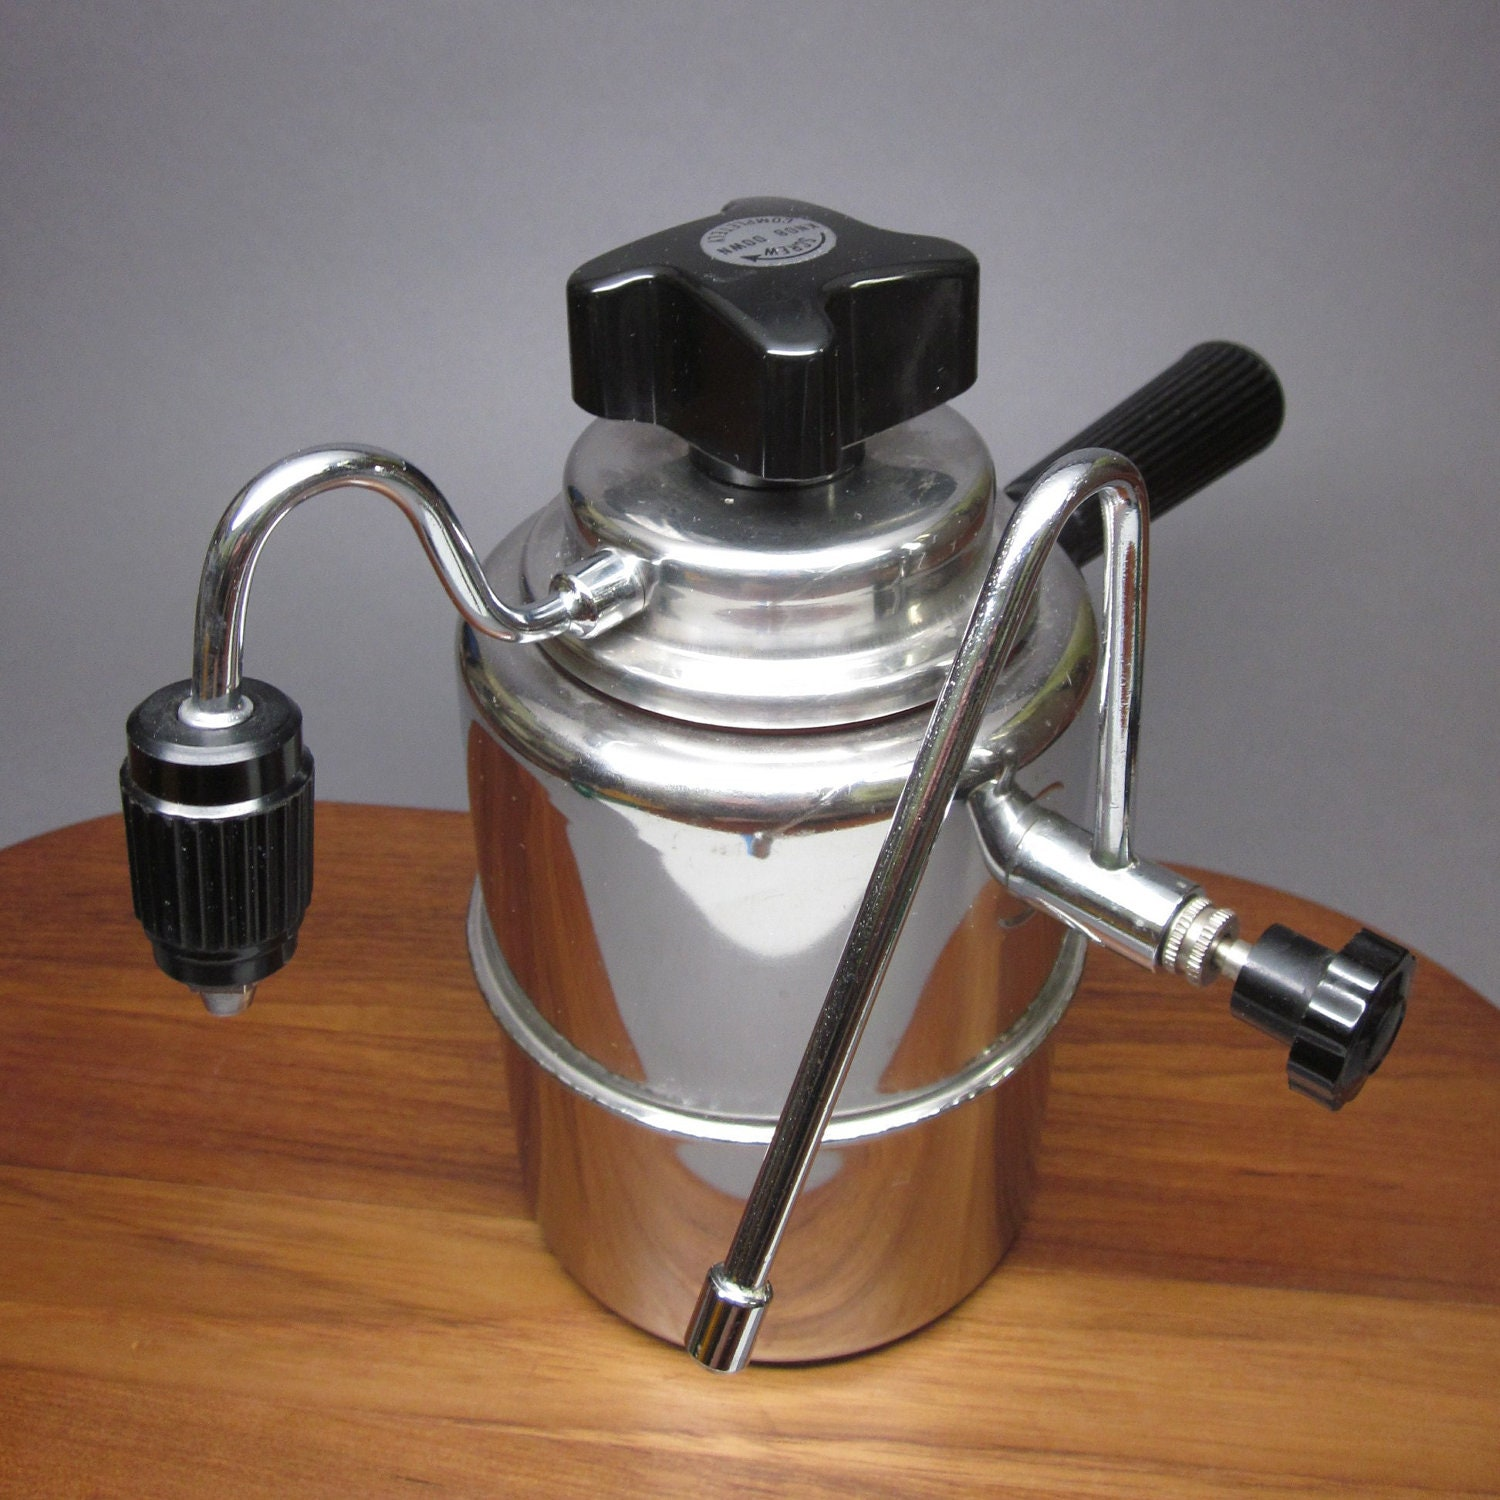 Elebak Stovetop Espresso Maker & Milk Frother Stainless